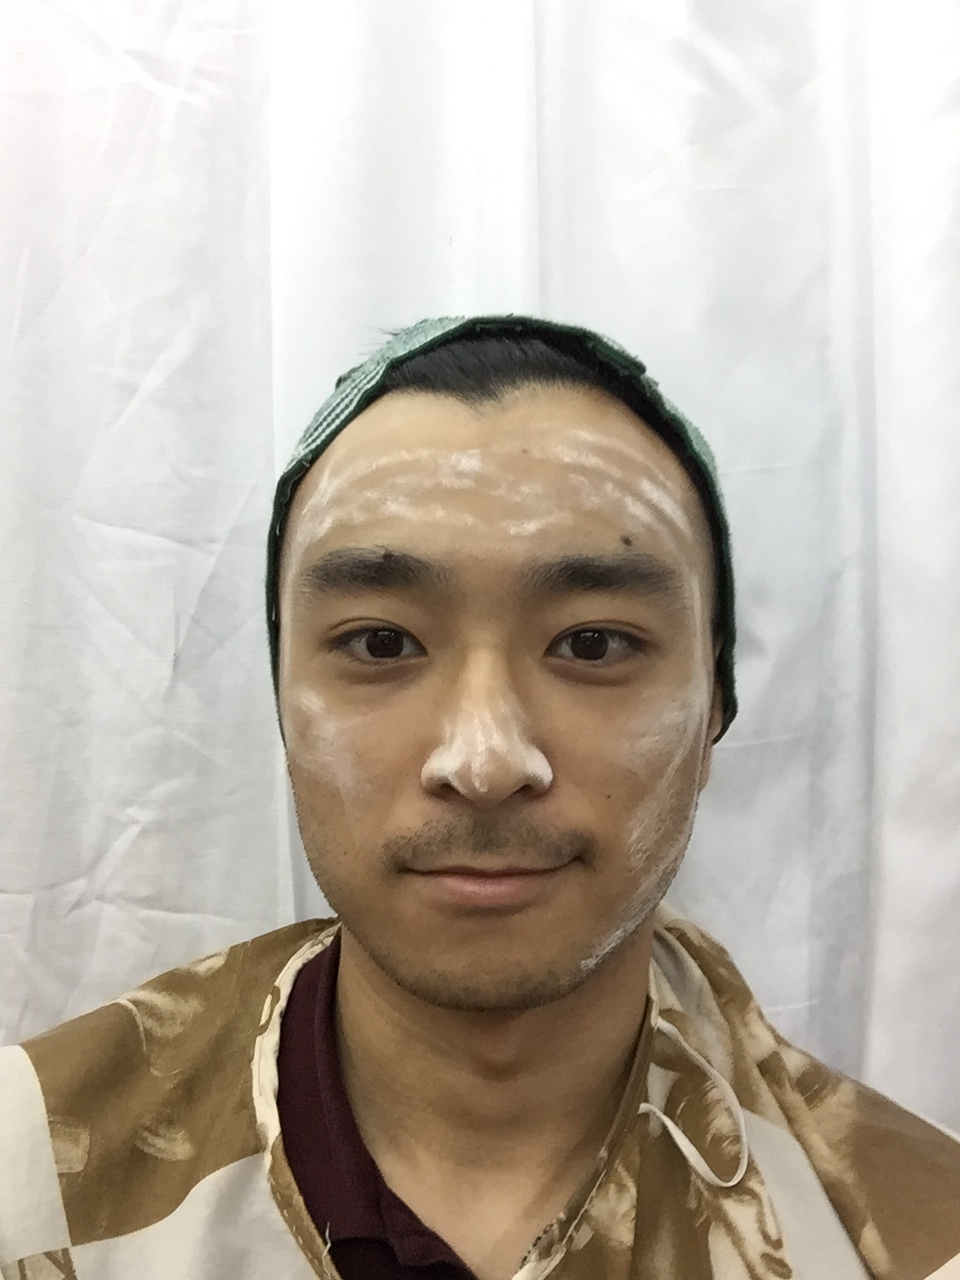 Before threading my face the practitioner applied some white powder on my face